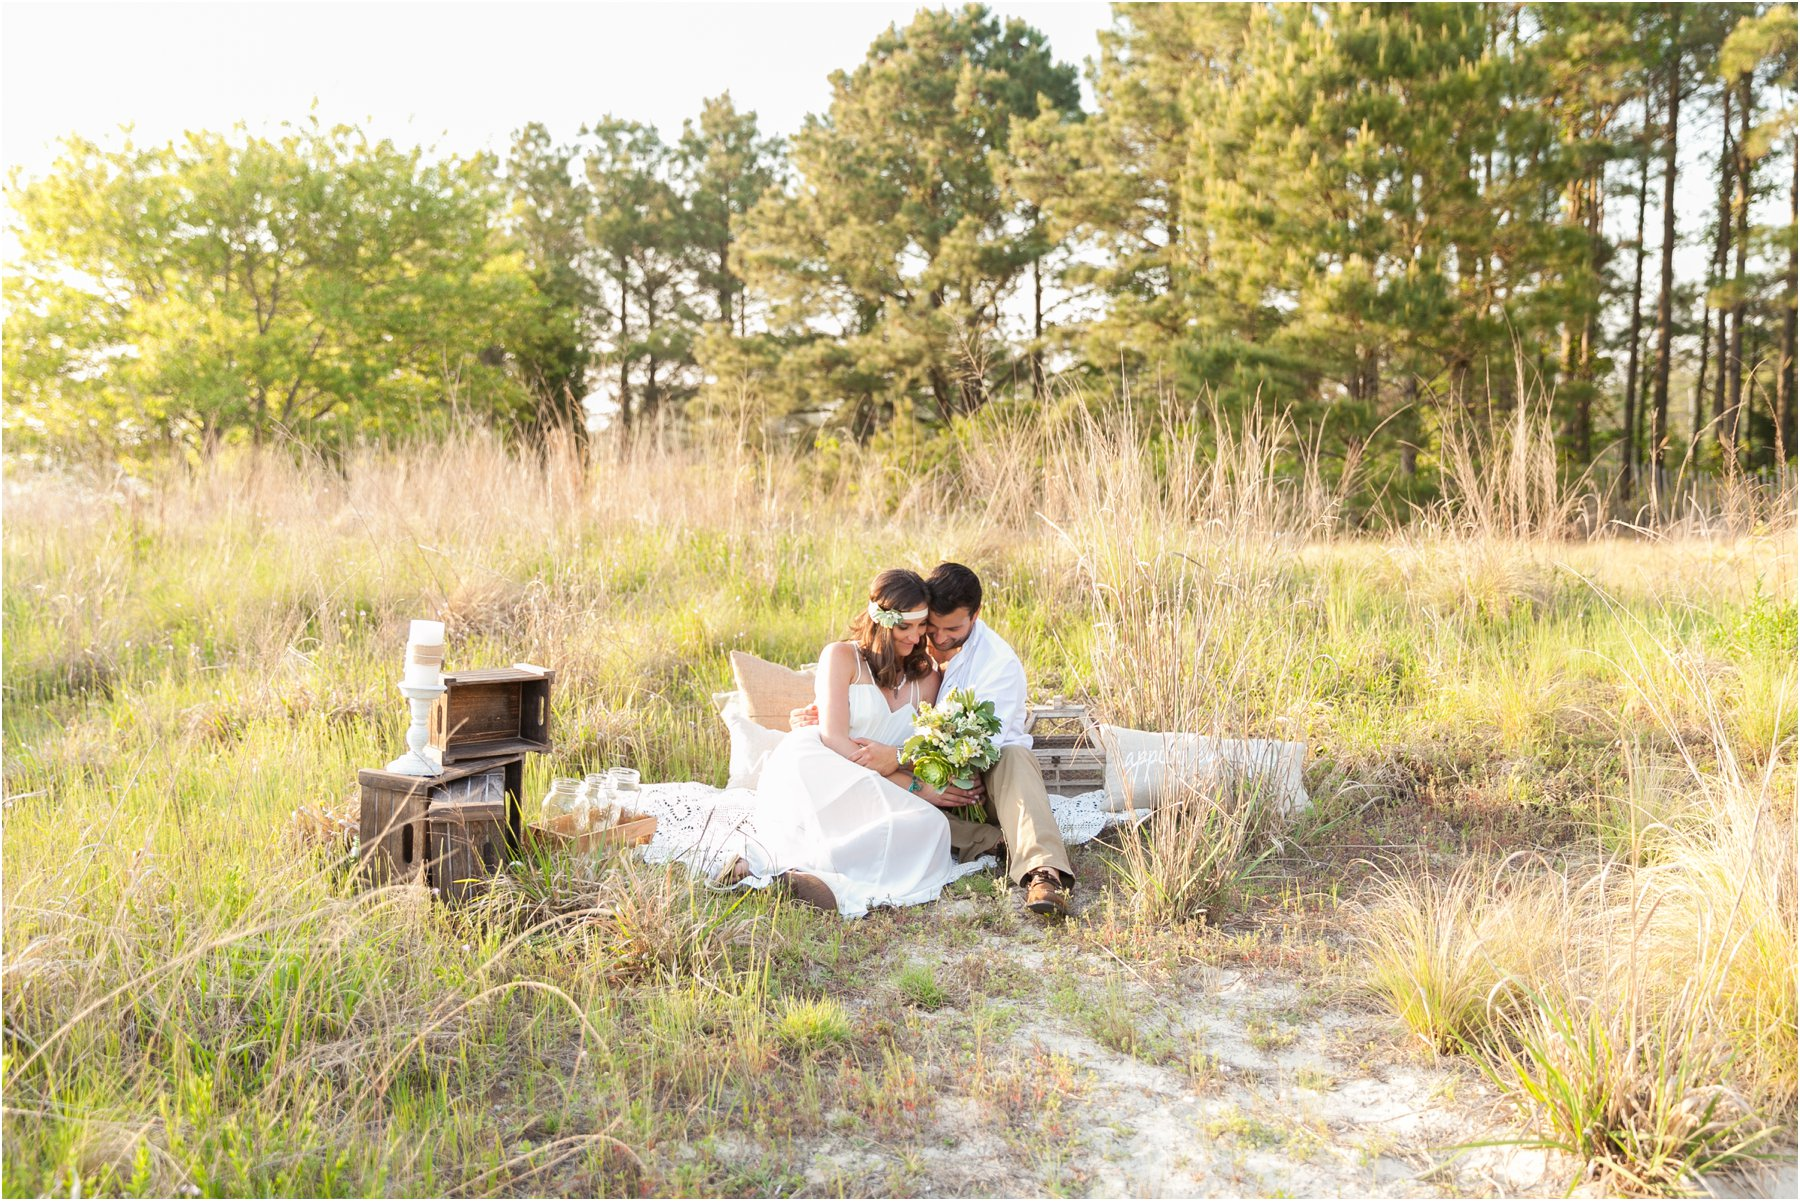 Nofolk_Zoo_engagement_photography_virginia_Jessica_ryan_photography_0177